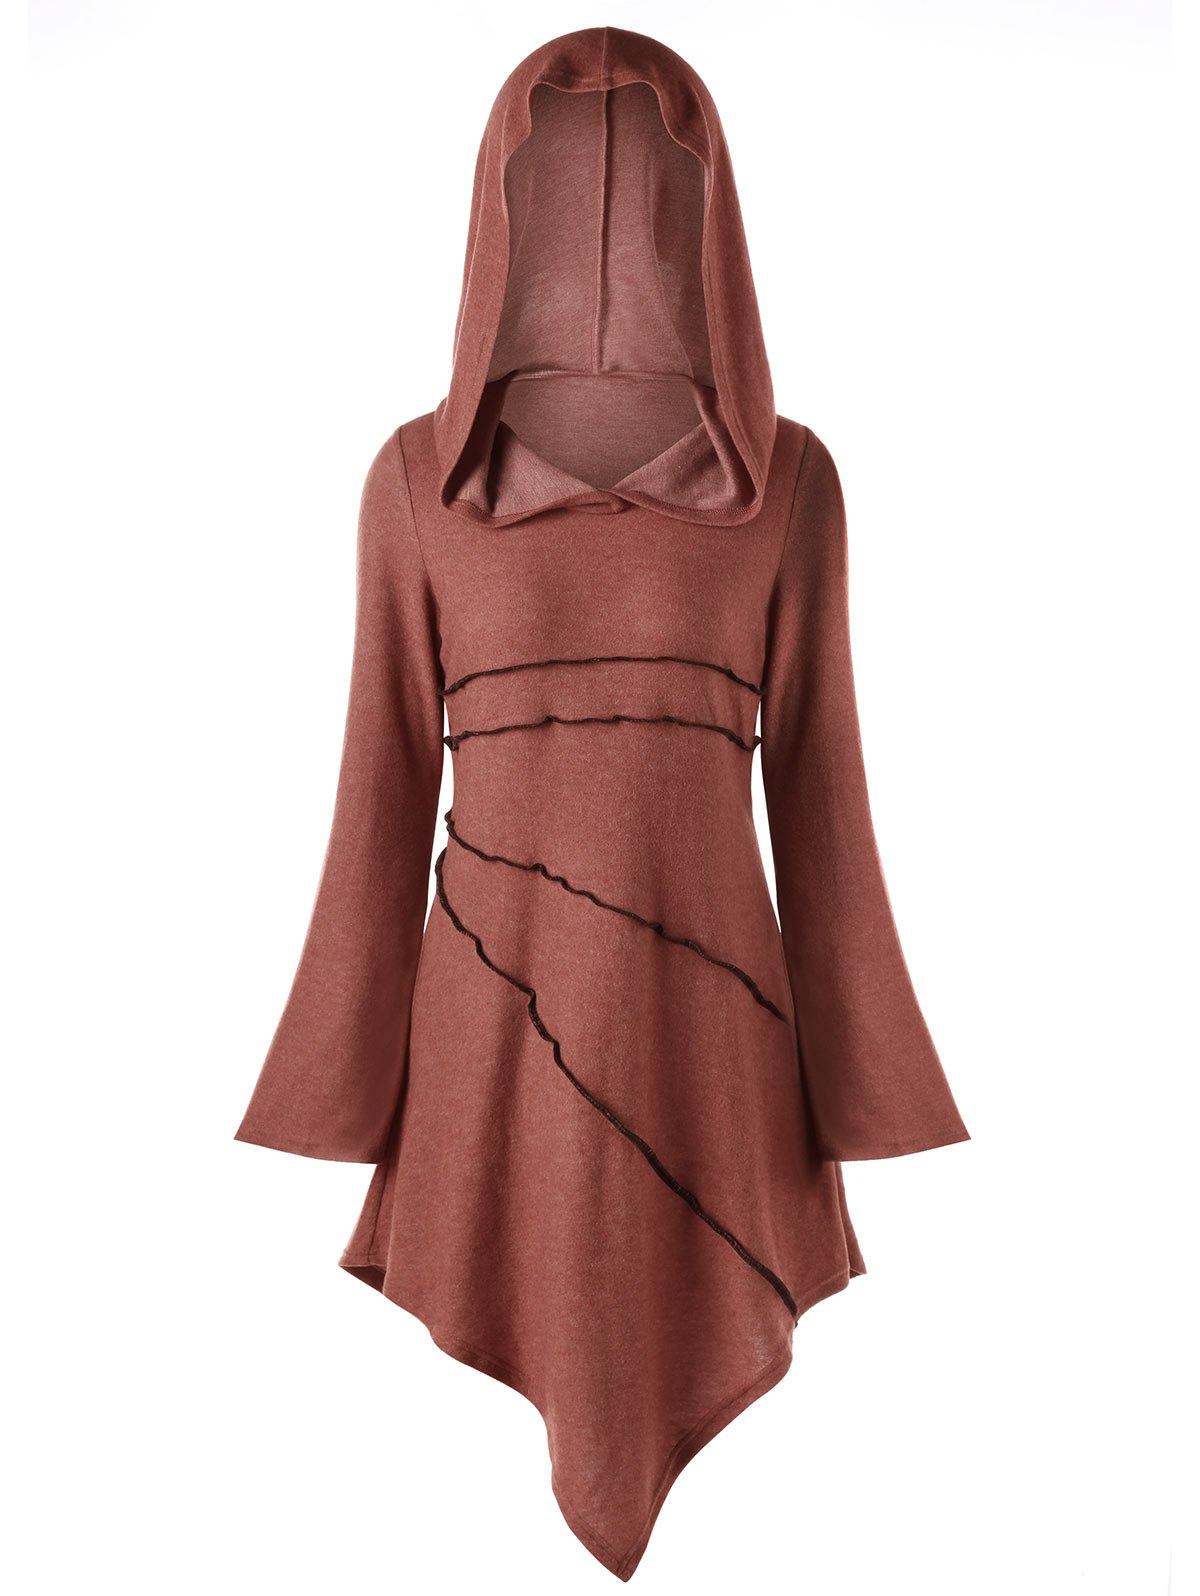 Asymmetric Exposed Seam Hoodie DressWOMEN<br><br>Size: L; Color: BRICK-RED; Style: Cute; Material: Cotton Blend,Polyester; Silhouette: Asymmetrical; Dresses Length: Knee-Length; Neckline: Hooded; Sleeve Length: Long Sleeves; Pattern Type: Solid Color; With Belt: No; Season: Fall,Spring; Weight: 0.4380kg; Package Contents: 1 x Dress; Occasion: Casual ,Going Out;